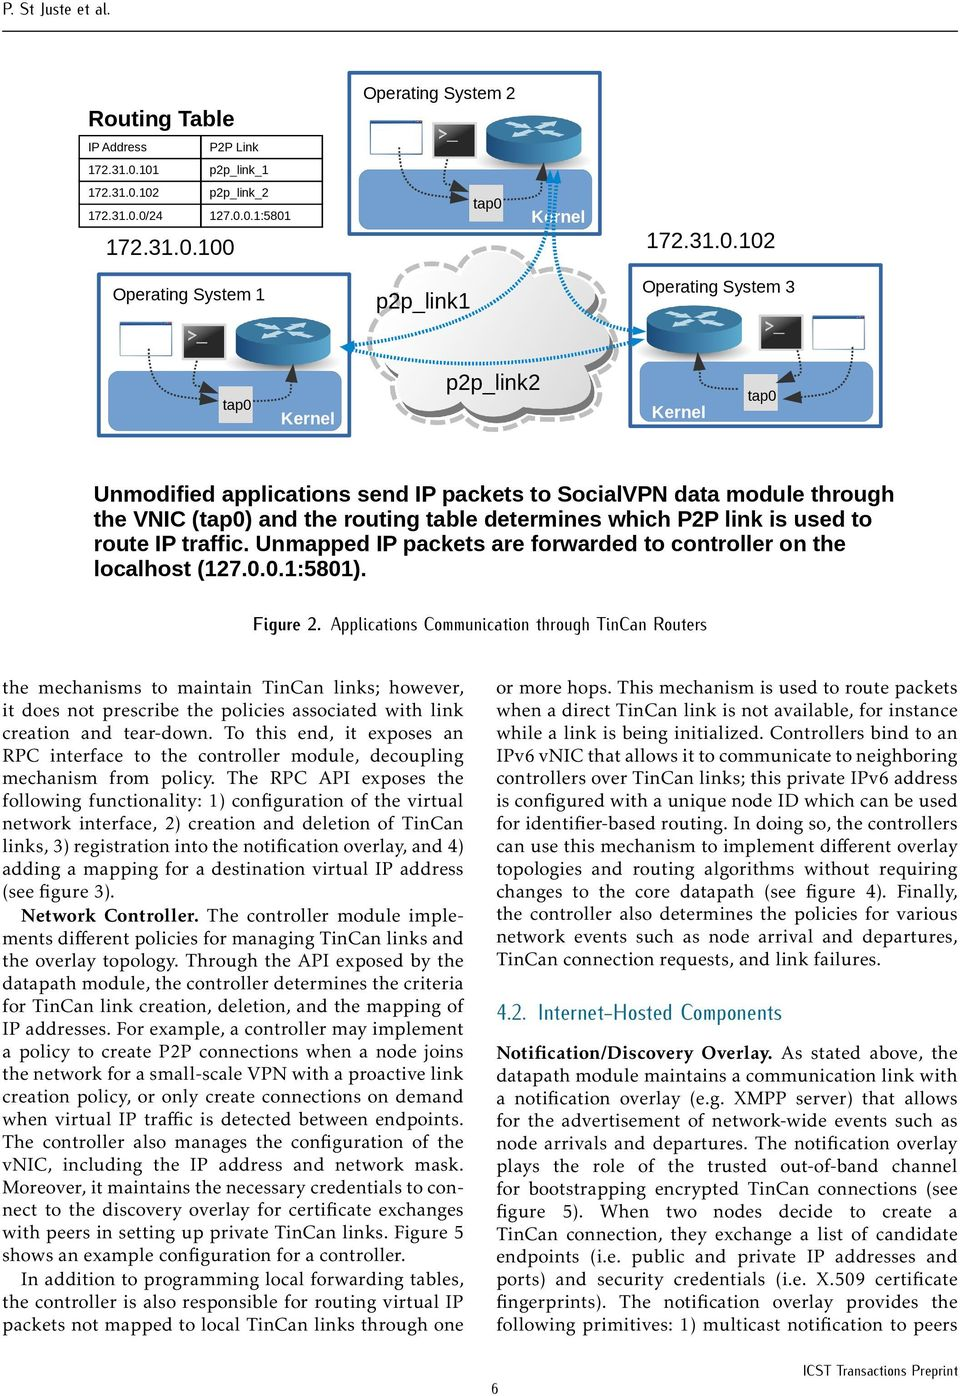 Kernel tap0 Unmodified applications send IP packets to SocialVPN data module through the VNIC (tap0) and the routing table determines which P2P link is used to route IP traffic.